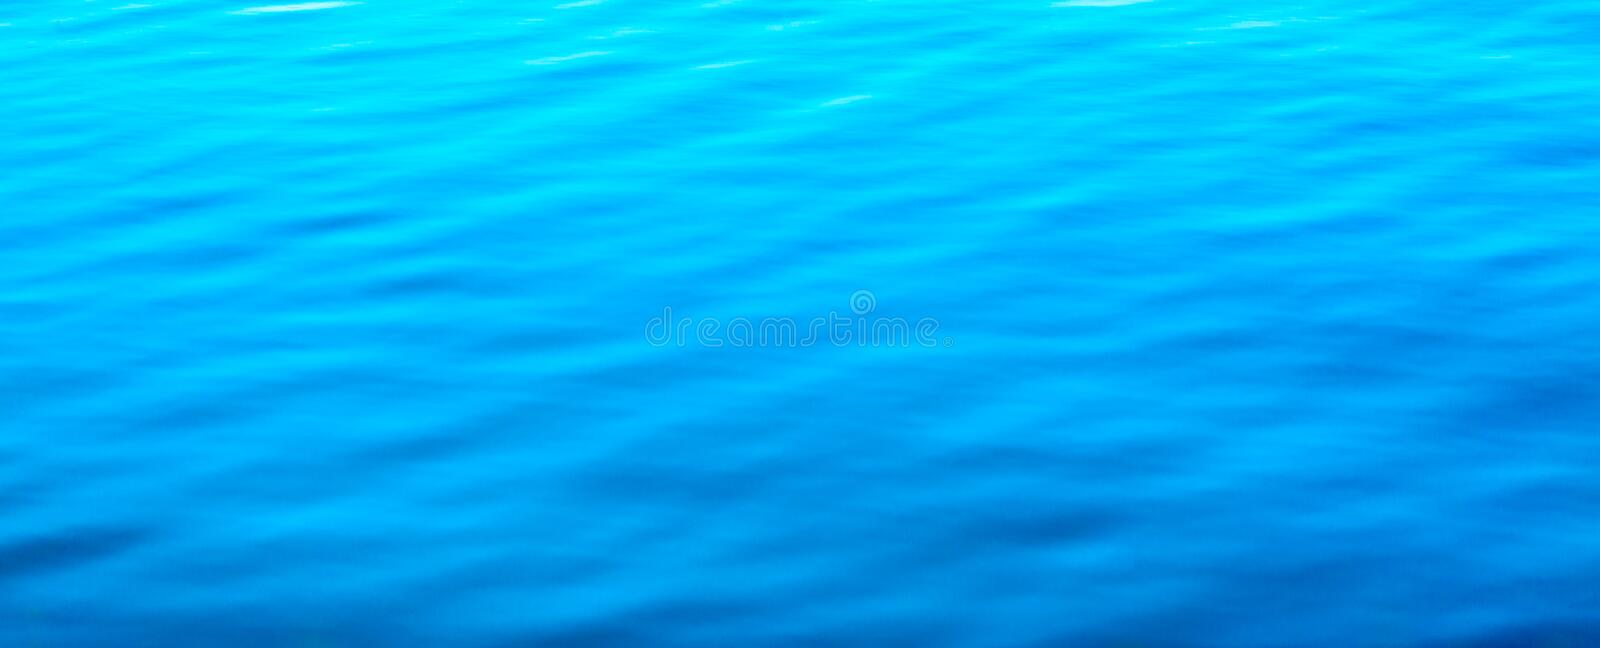 Water abstract background. Blue water ripples texture pattern royalty free stock photos